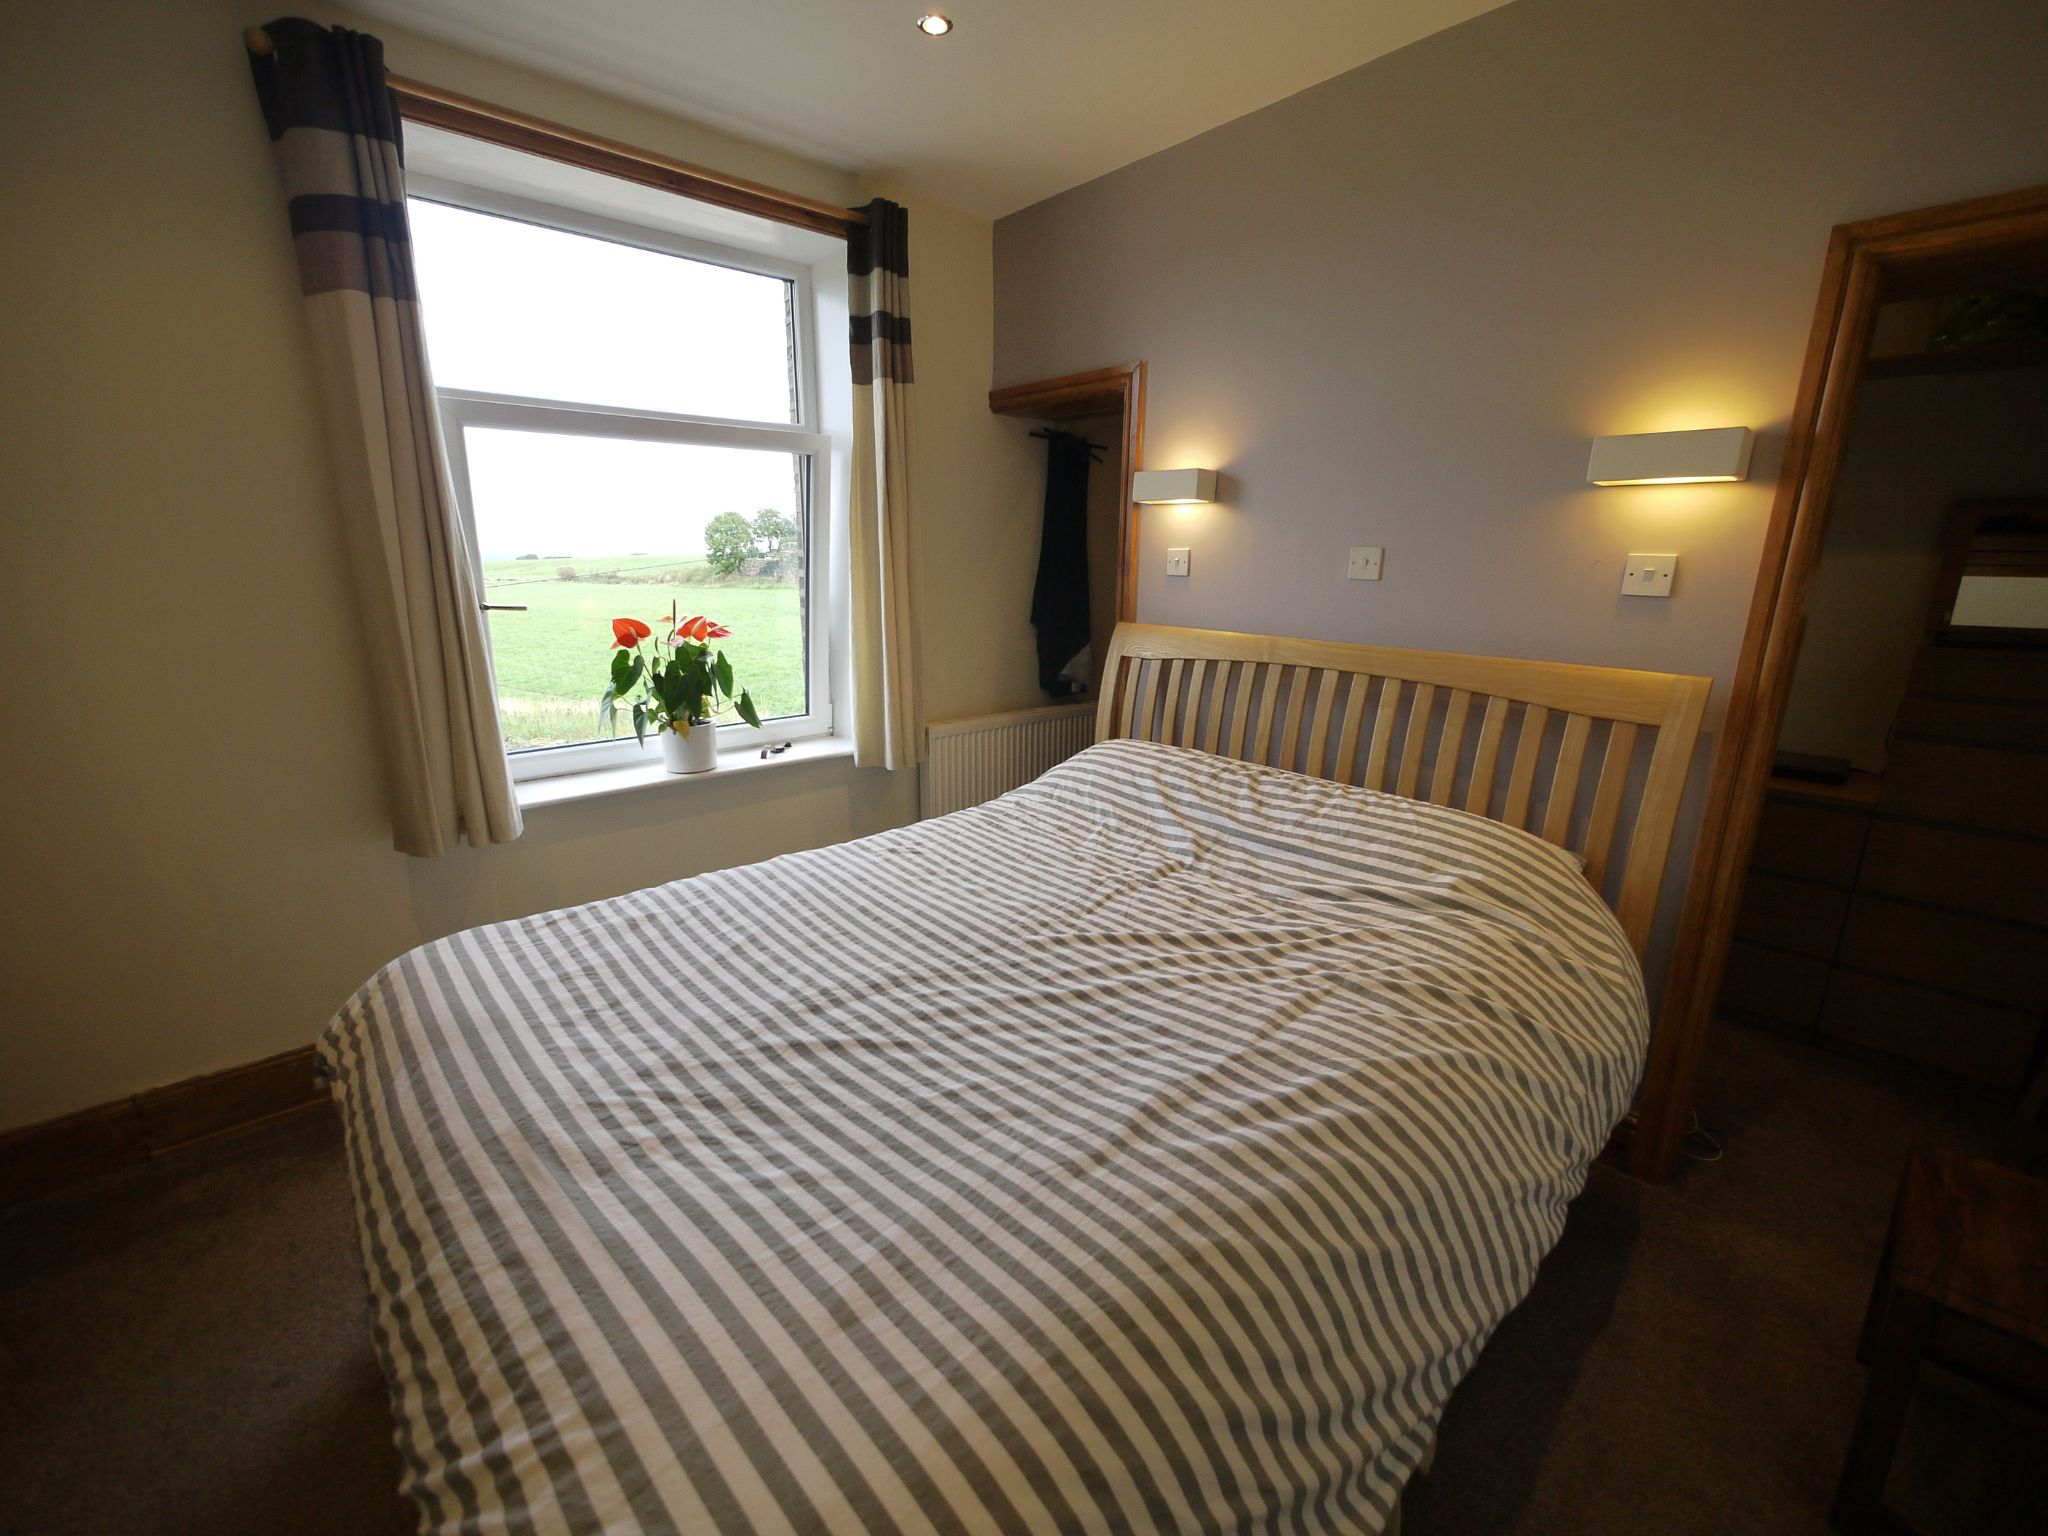 1 bedroom mid terraced house For Sale in Elland - Bed 1.